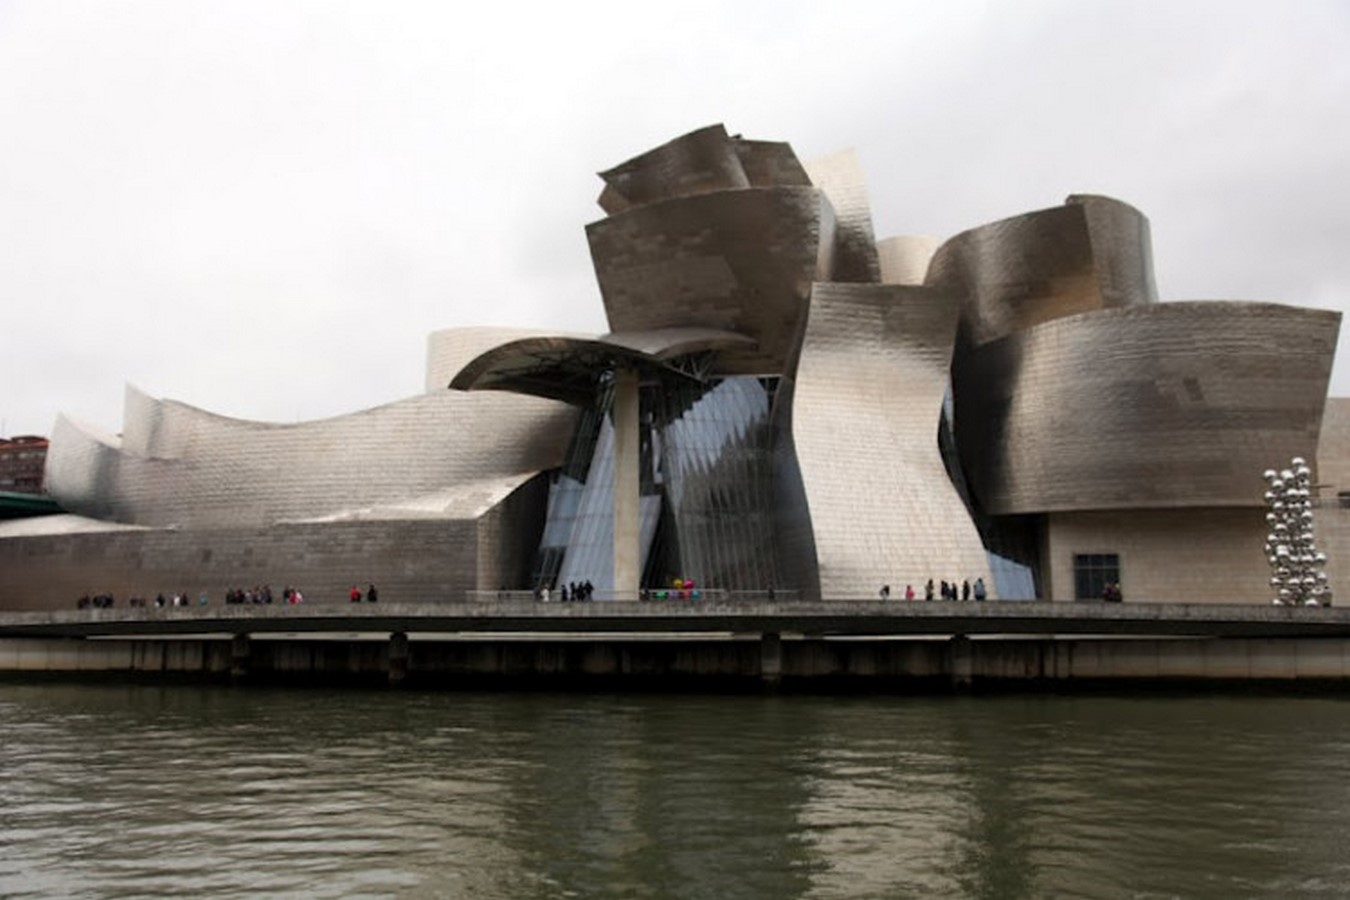 Guggenheim Museum Bilbao by Frank Gehry: United the Critics, Academics, and the General public - Sheet1